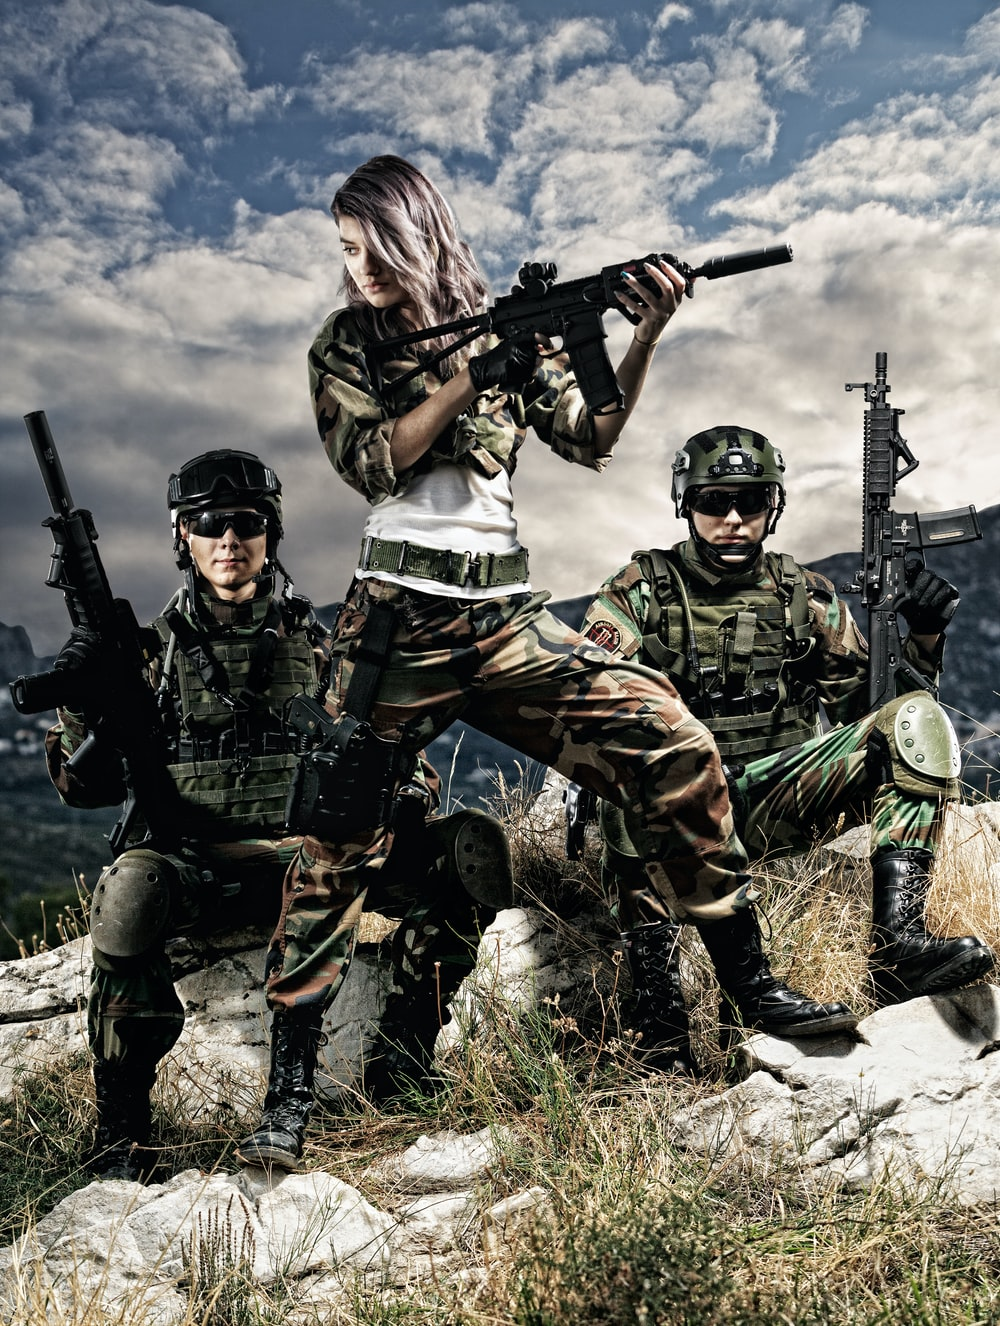 500 army photos hd download free images on unsplash 500 army photos hd download free